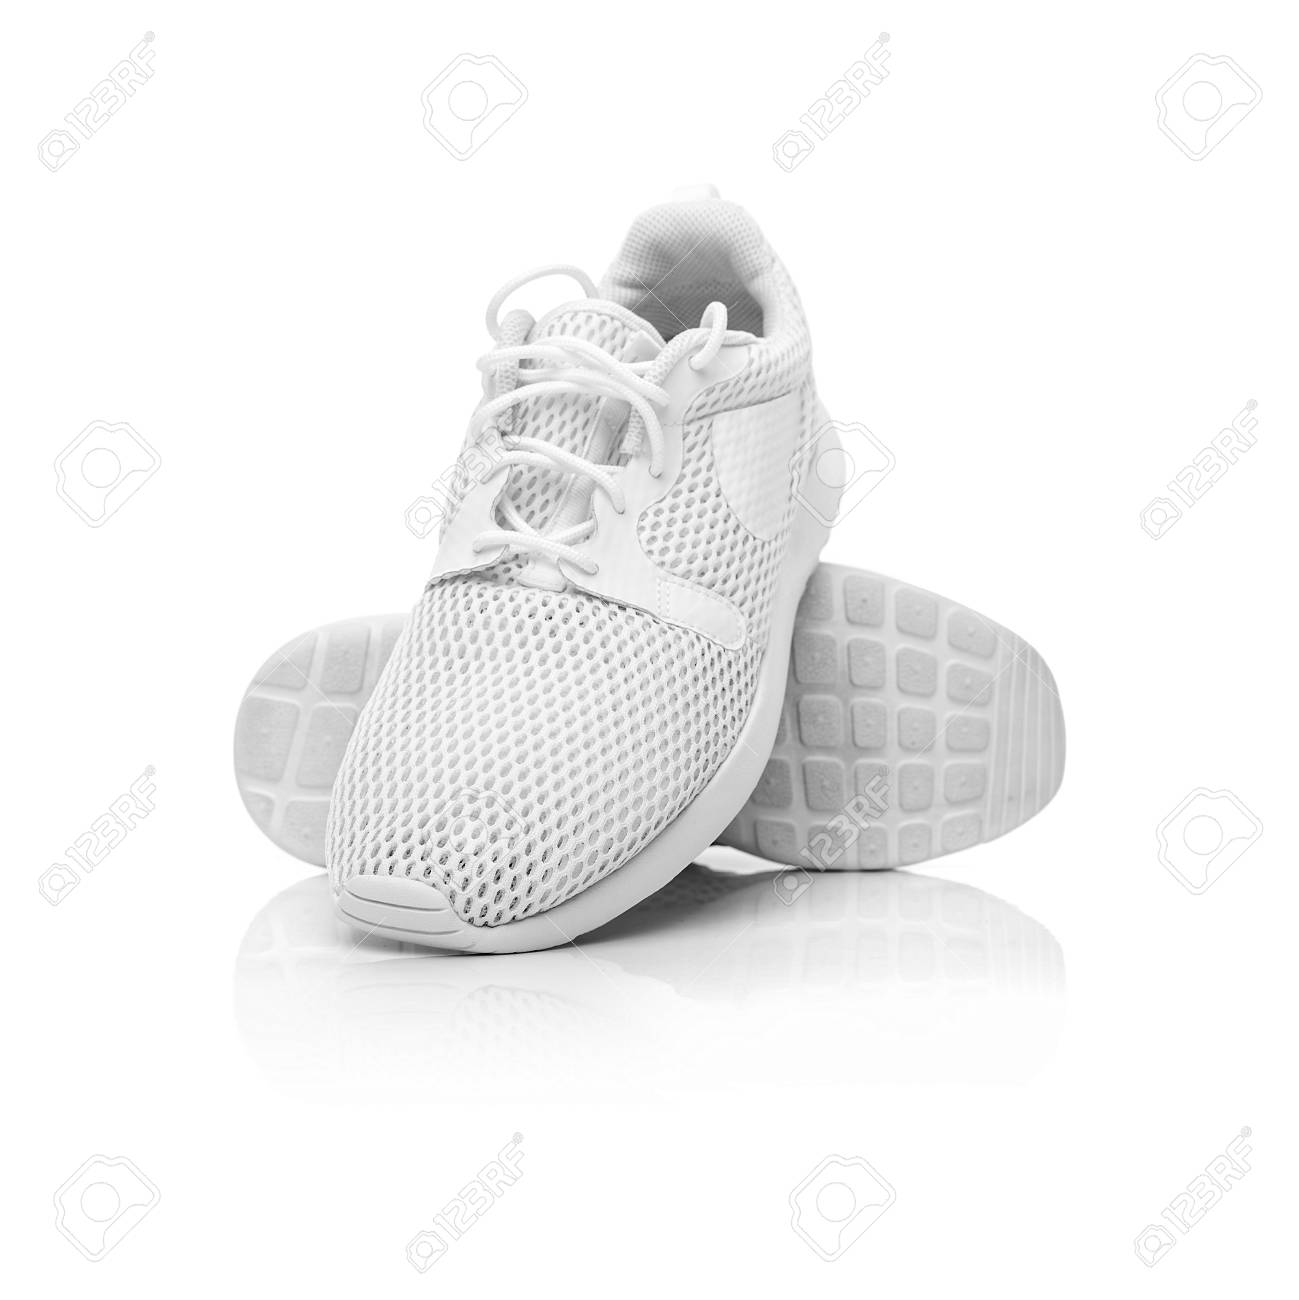 White unbranded sneakers. - 71927619